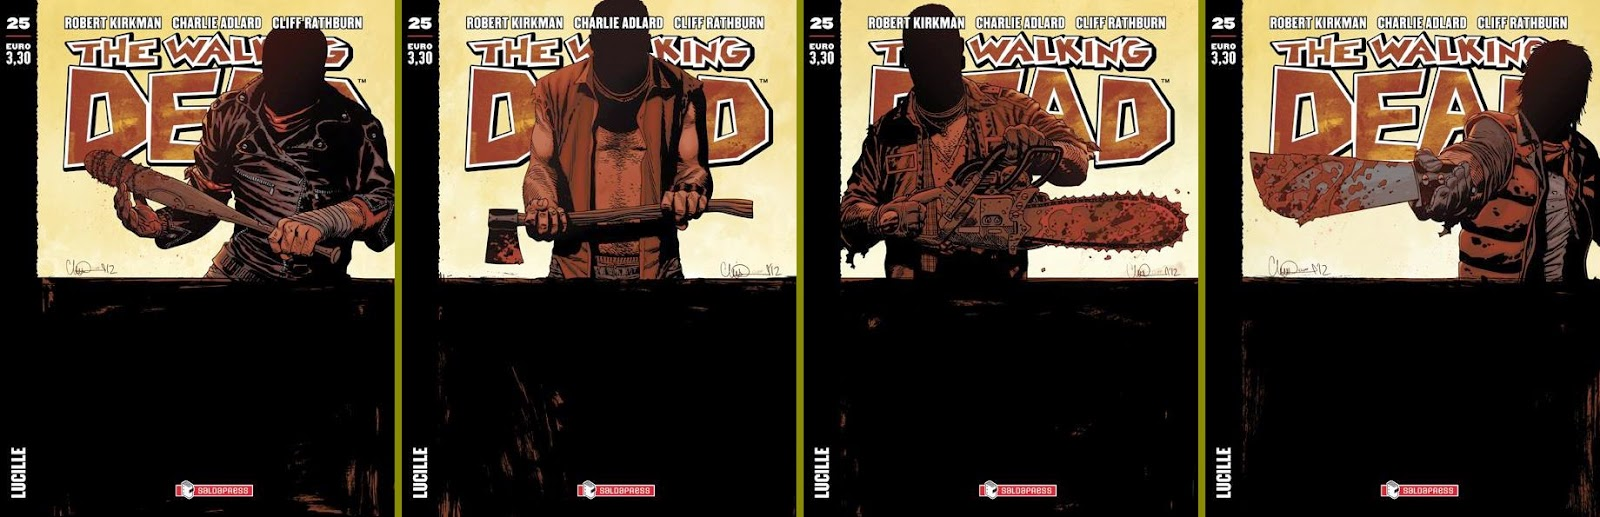 The Walking Dead #25 - Lucille